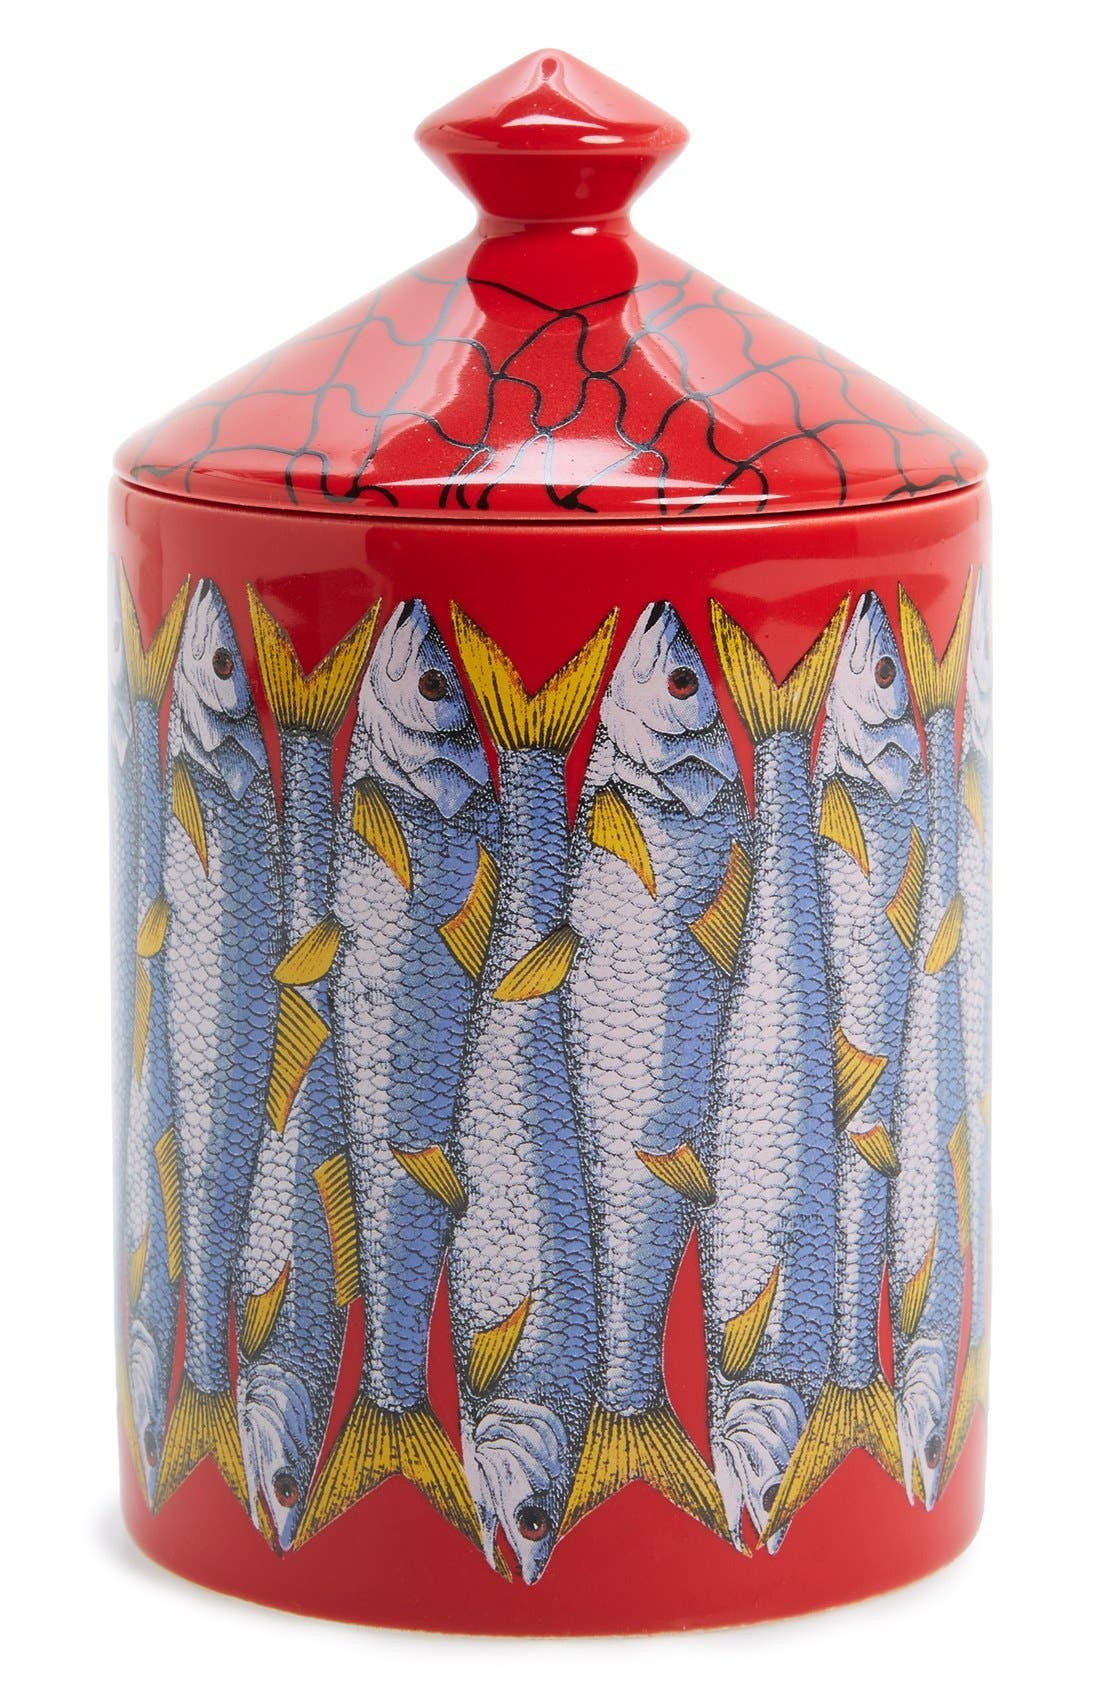 Fornasetti 'Sardine Rosso' Lidded Candle